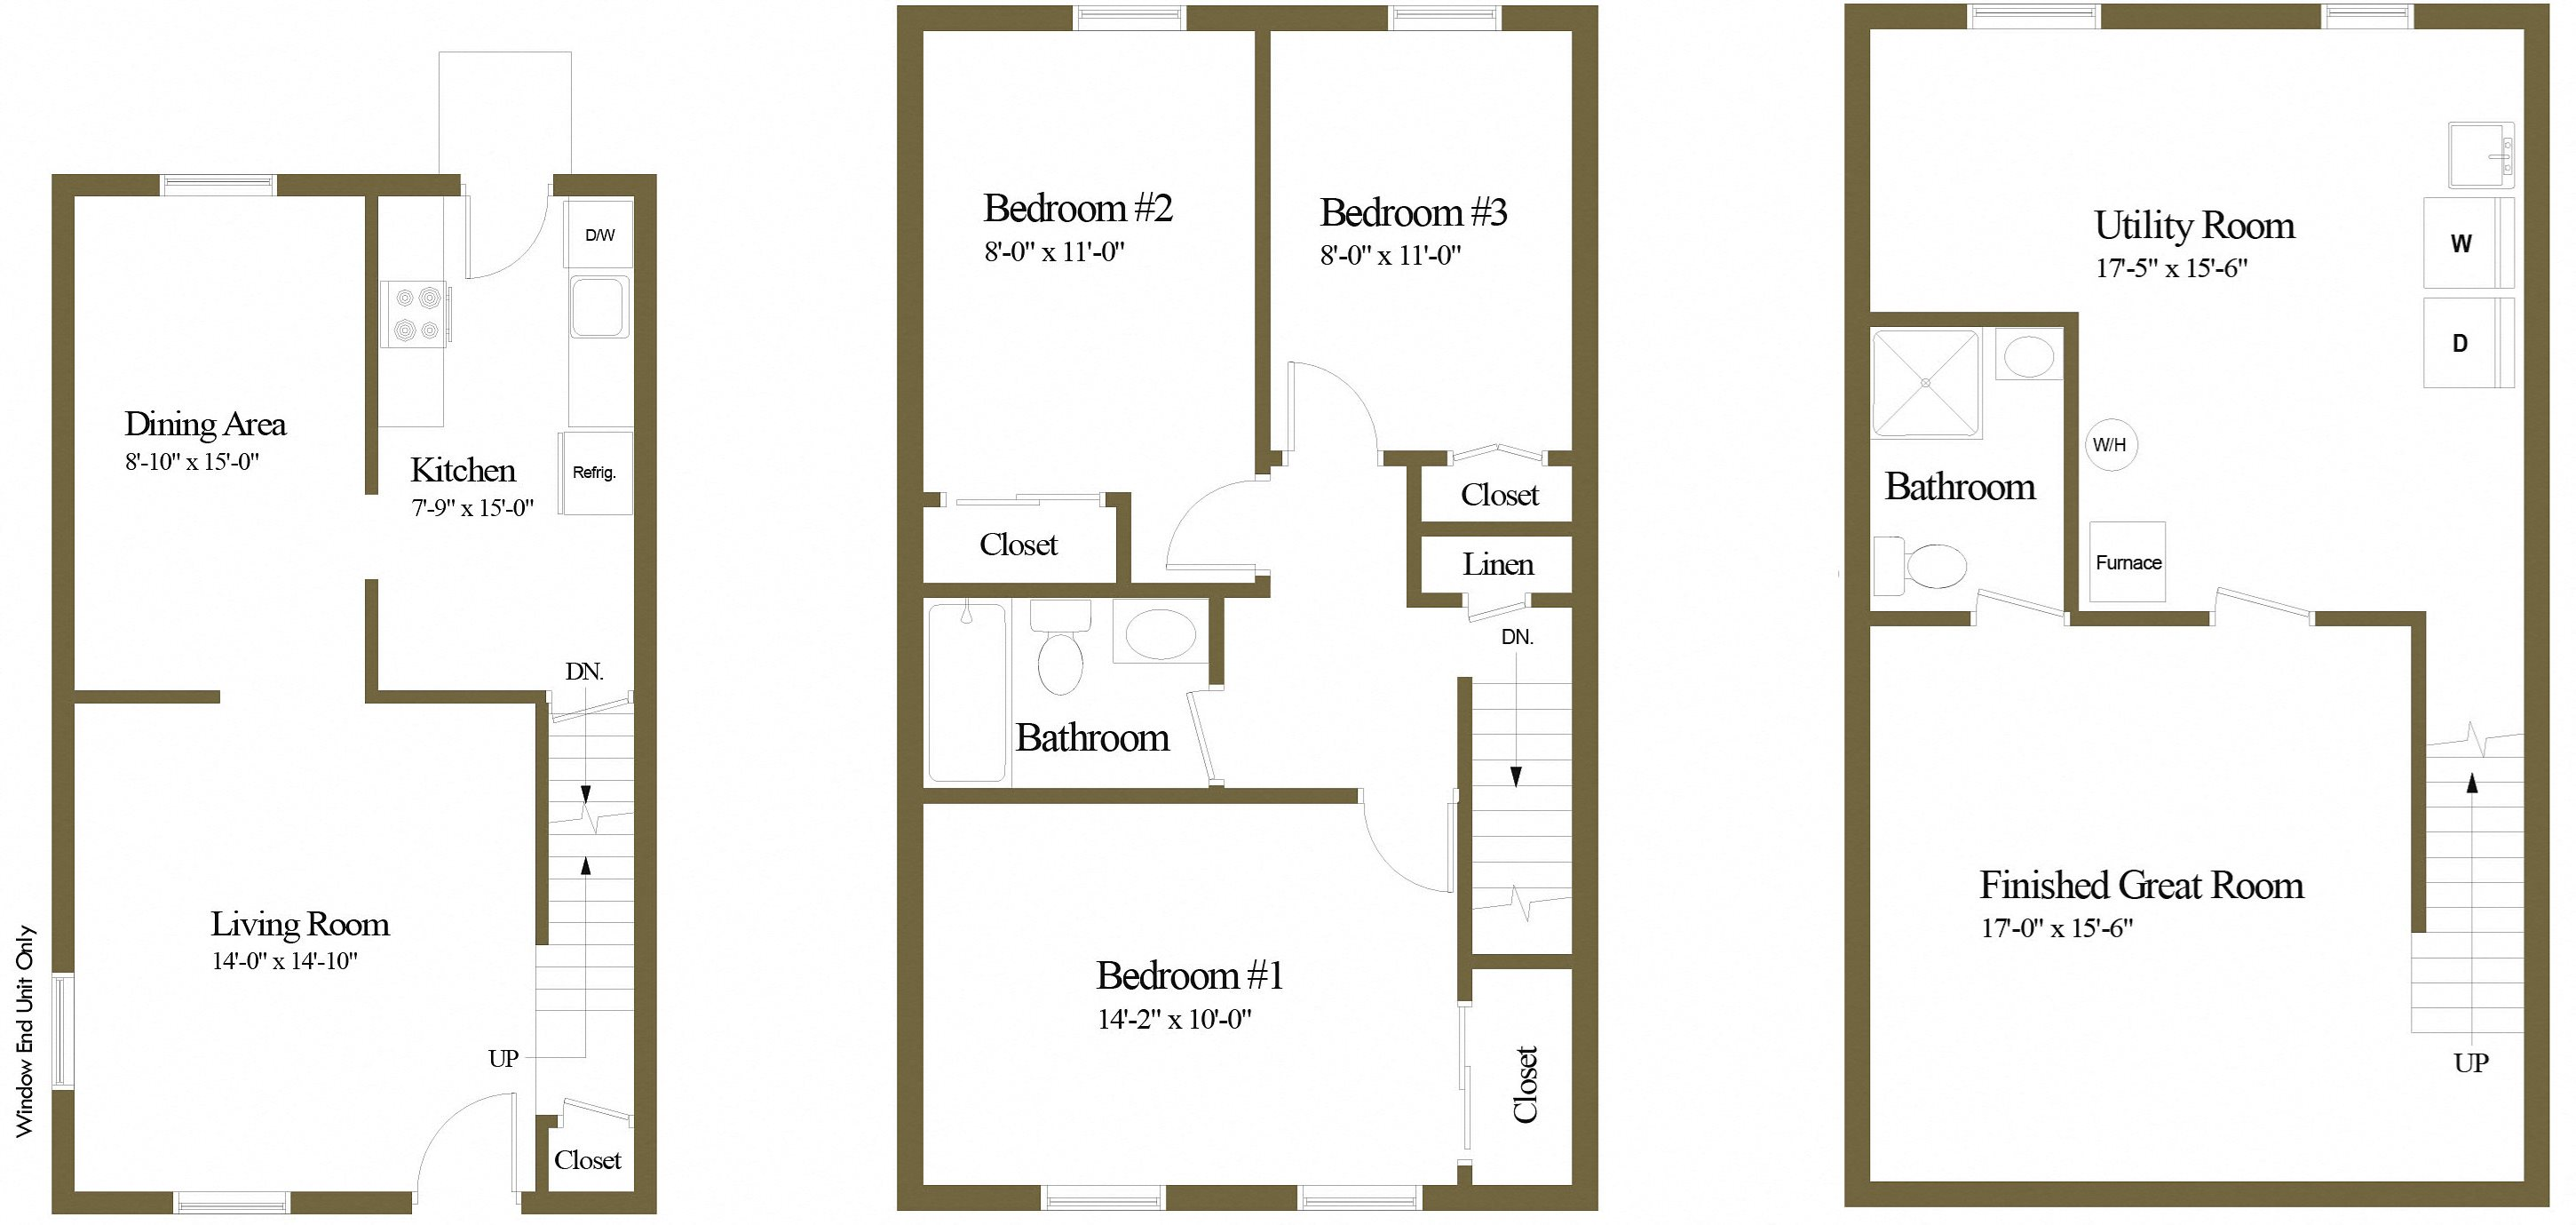 3 Bedroom 2 Bathroom Floor Plan 1